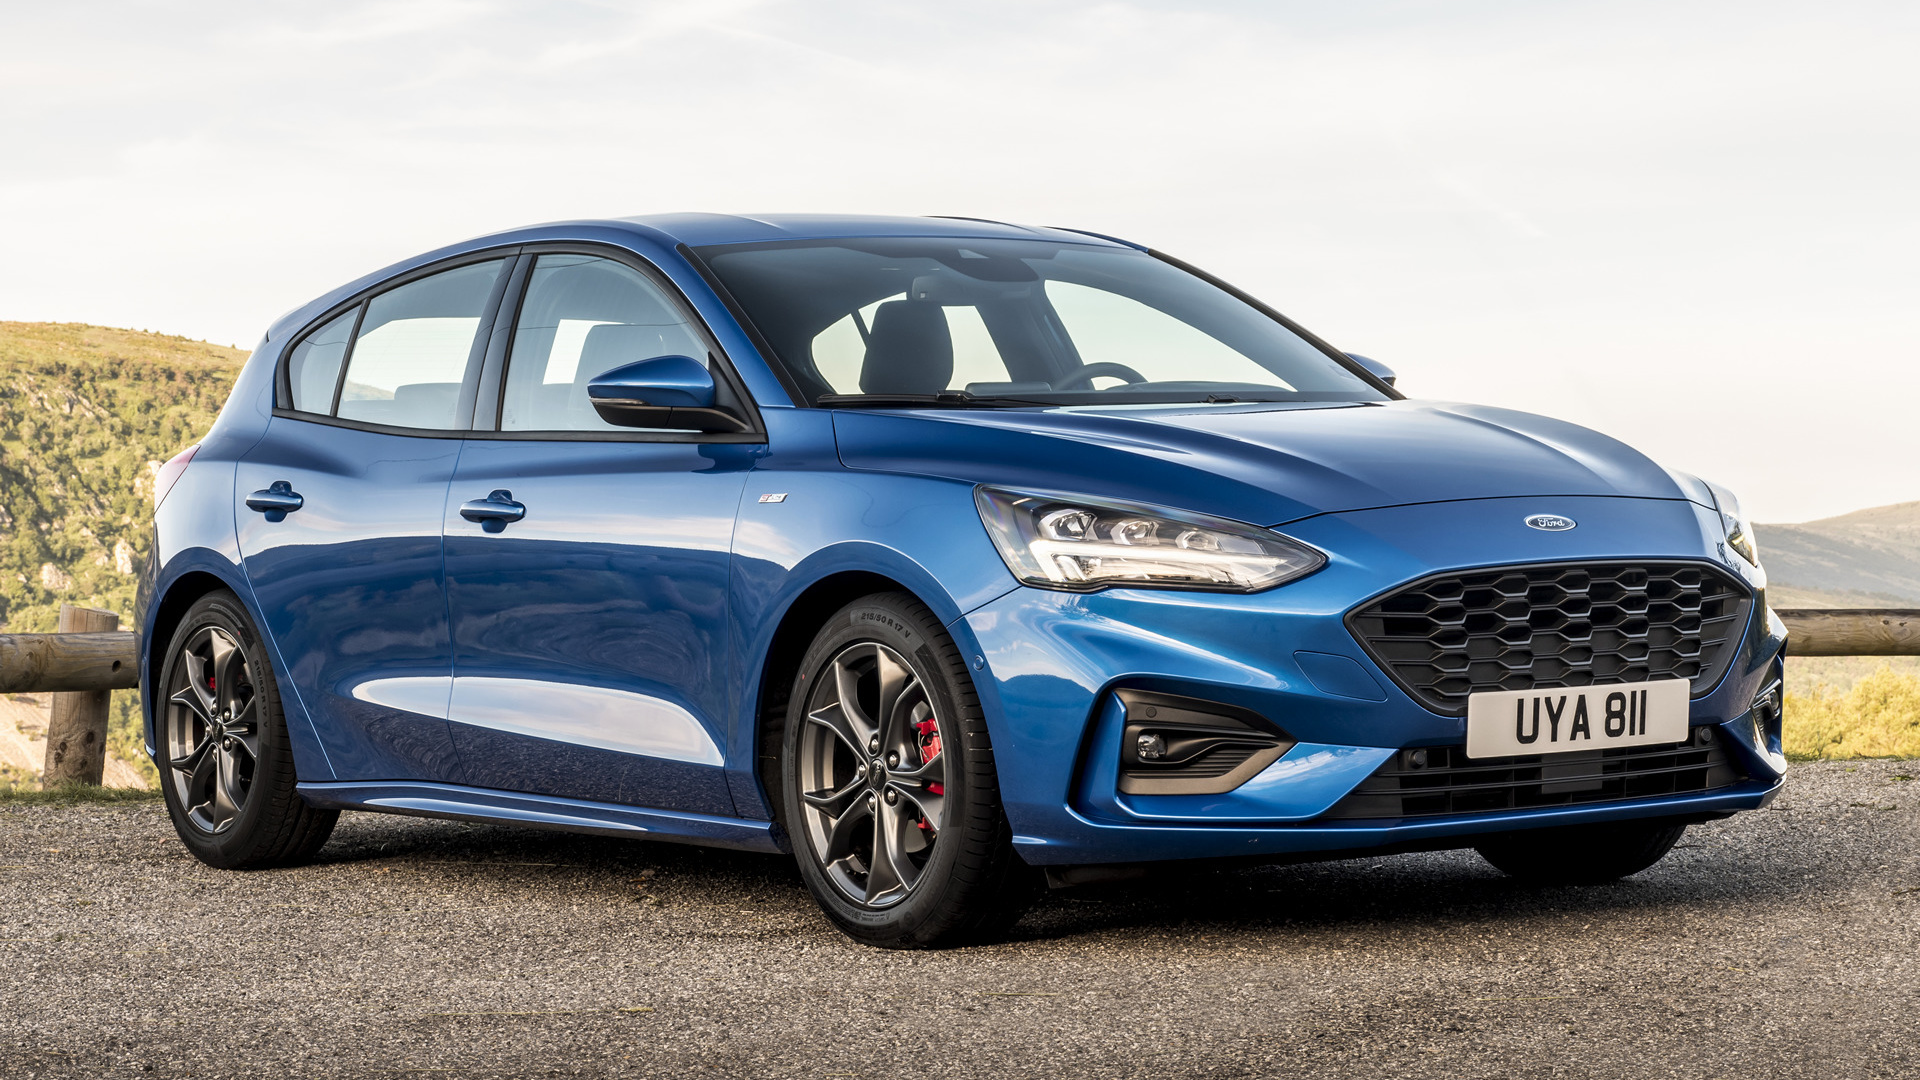 2018 Ford Focus St Line Hd Wallpaper Background Image